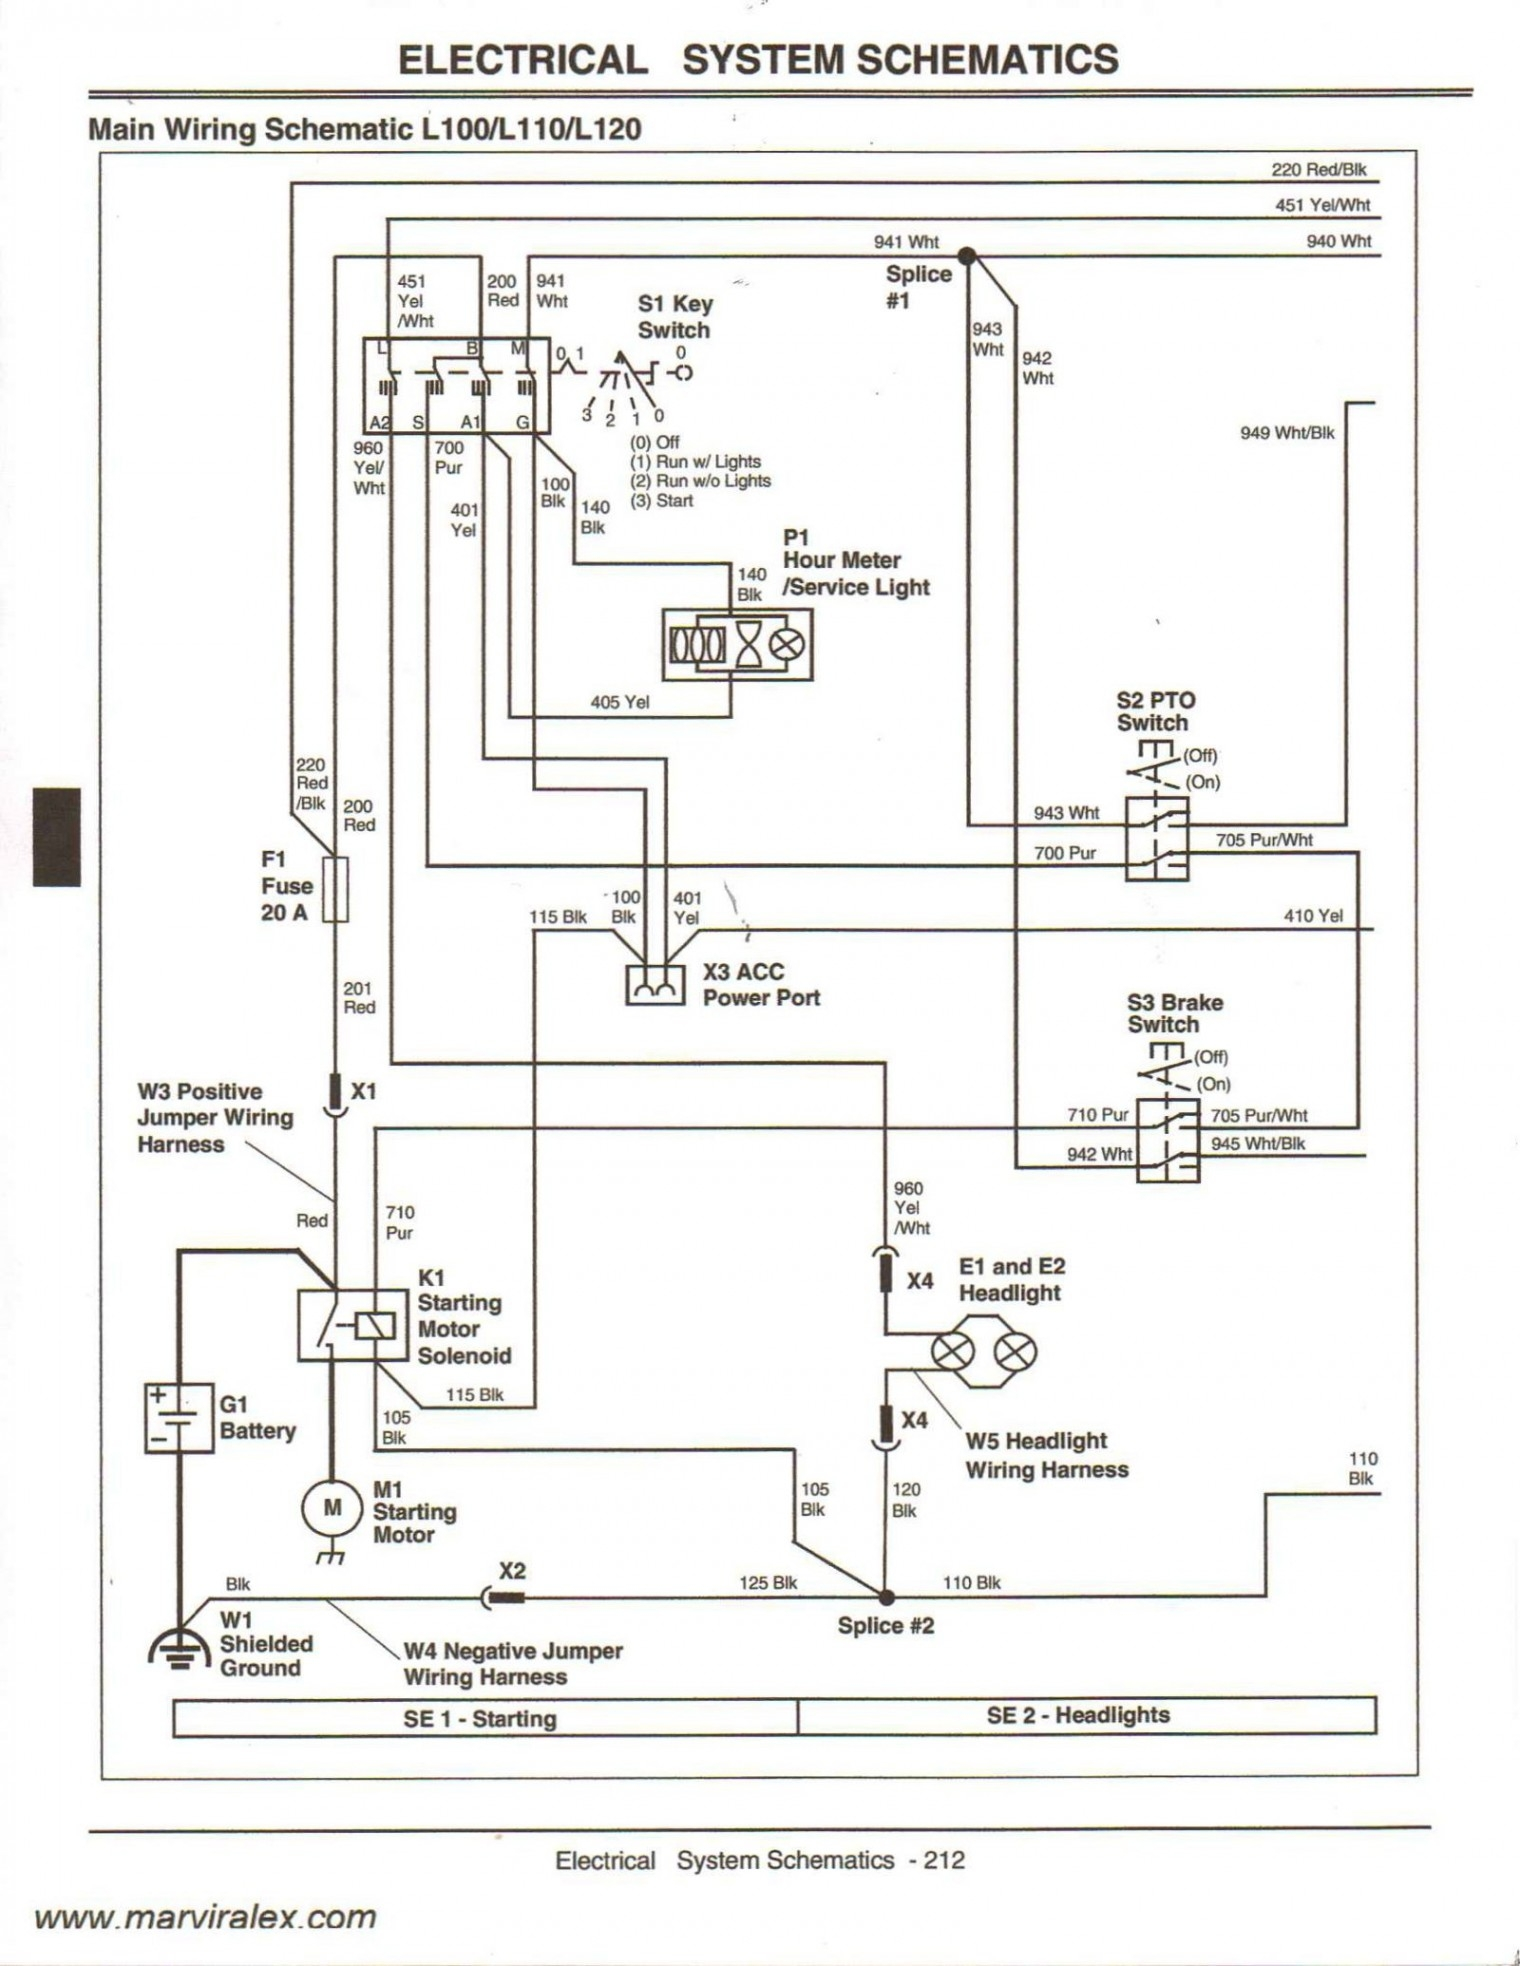 hight resolution of john deere l130 riding lawn mower safety switch wiring diagrams john deere l130 riding lawn mower safety switch wiring diagrams